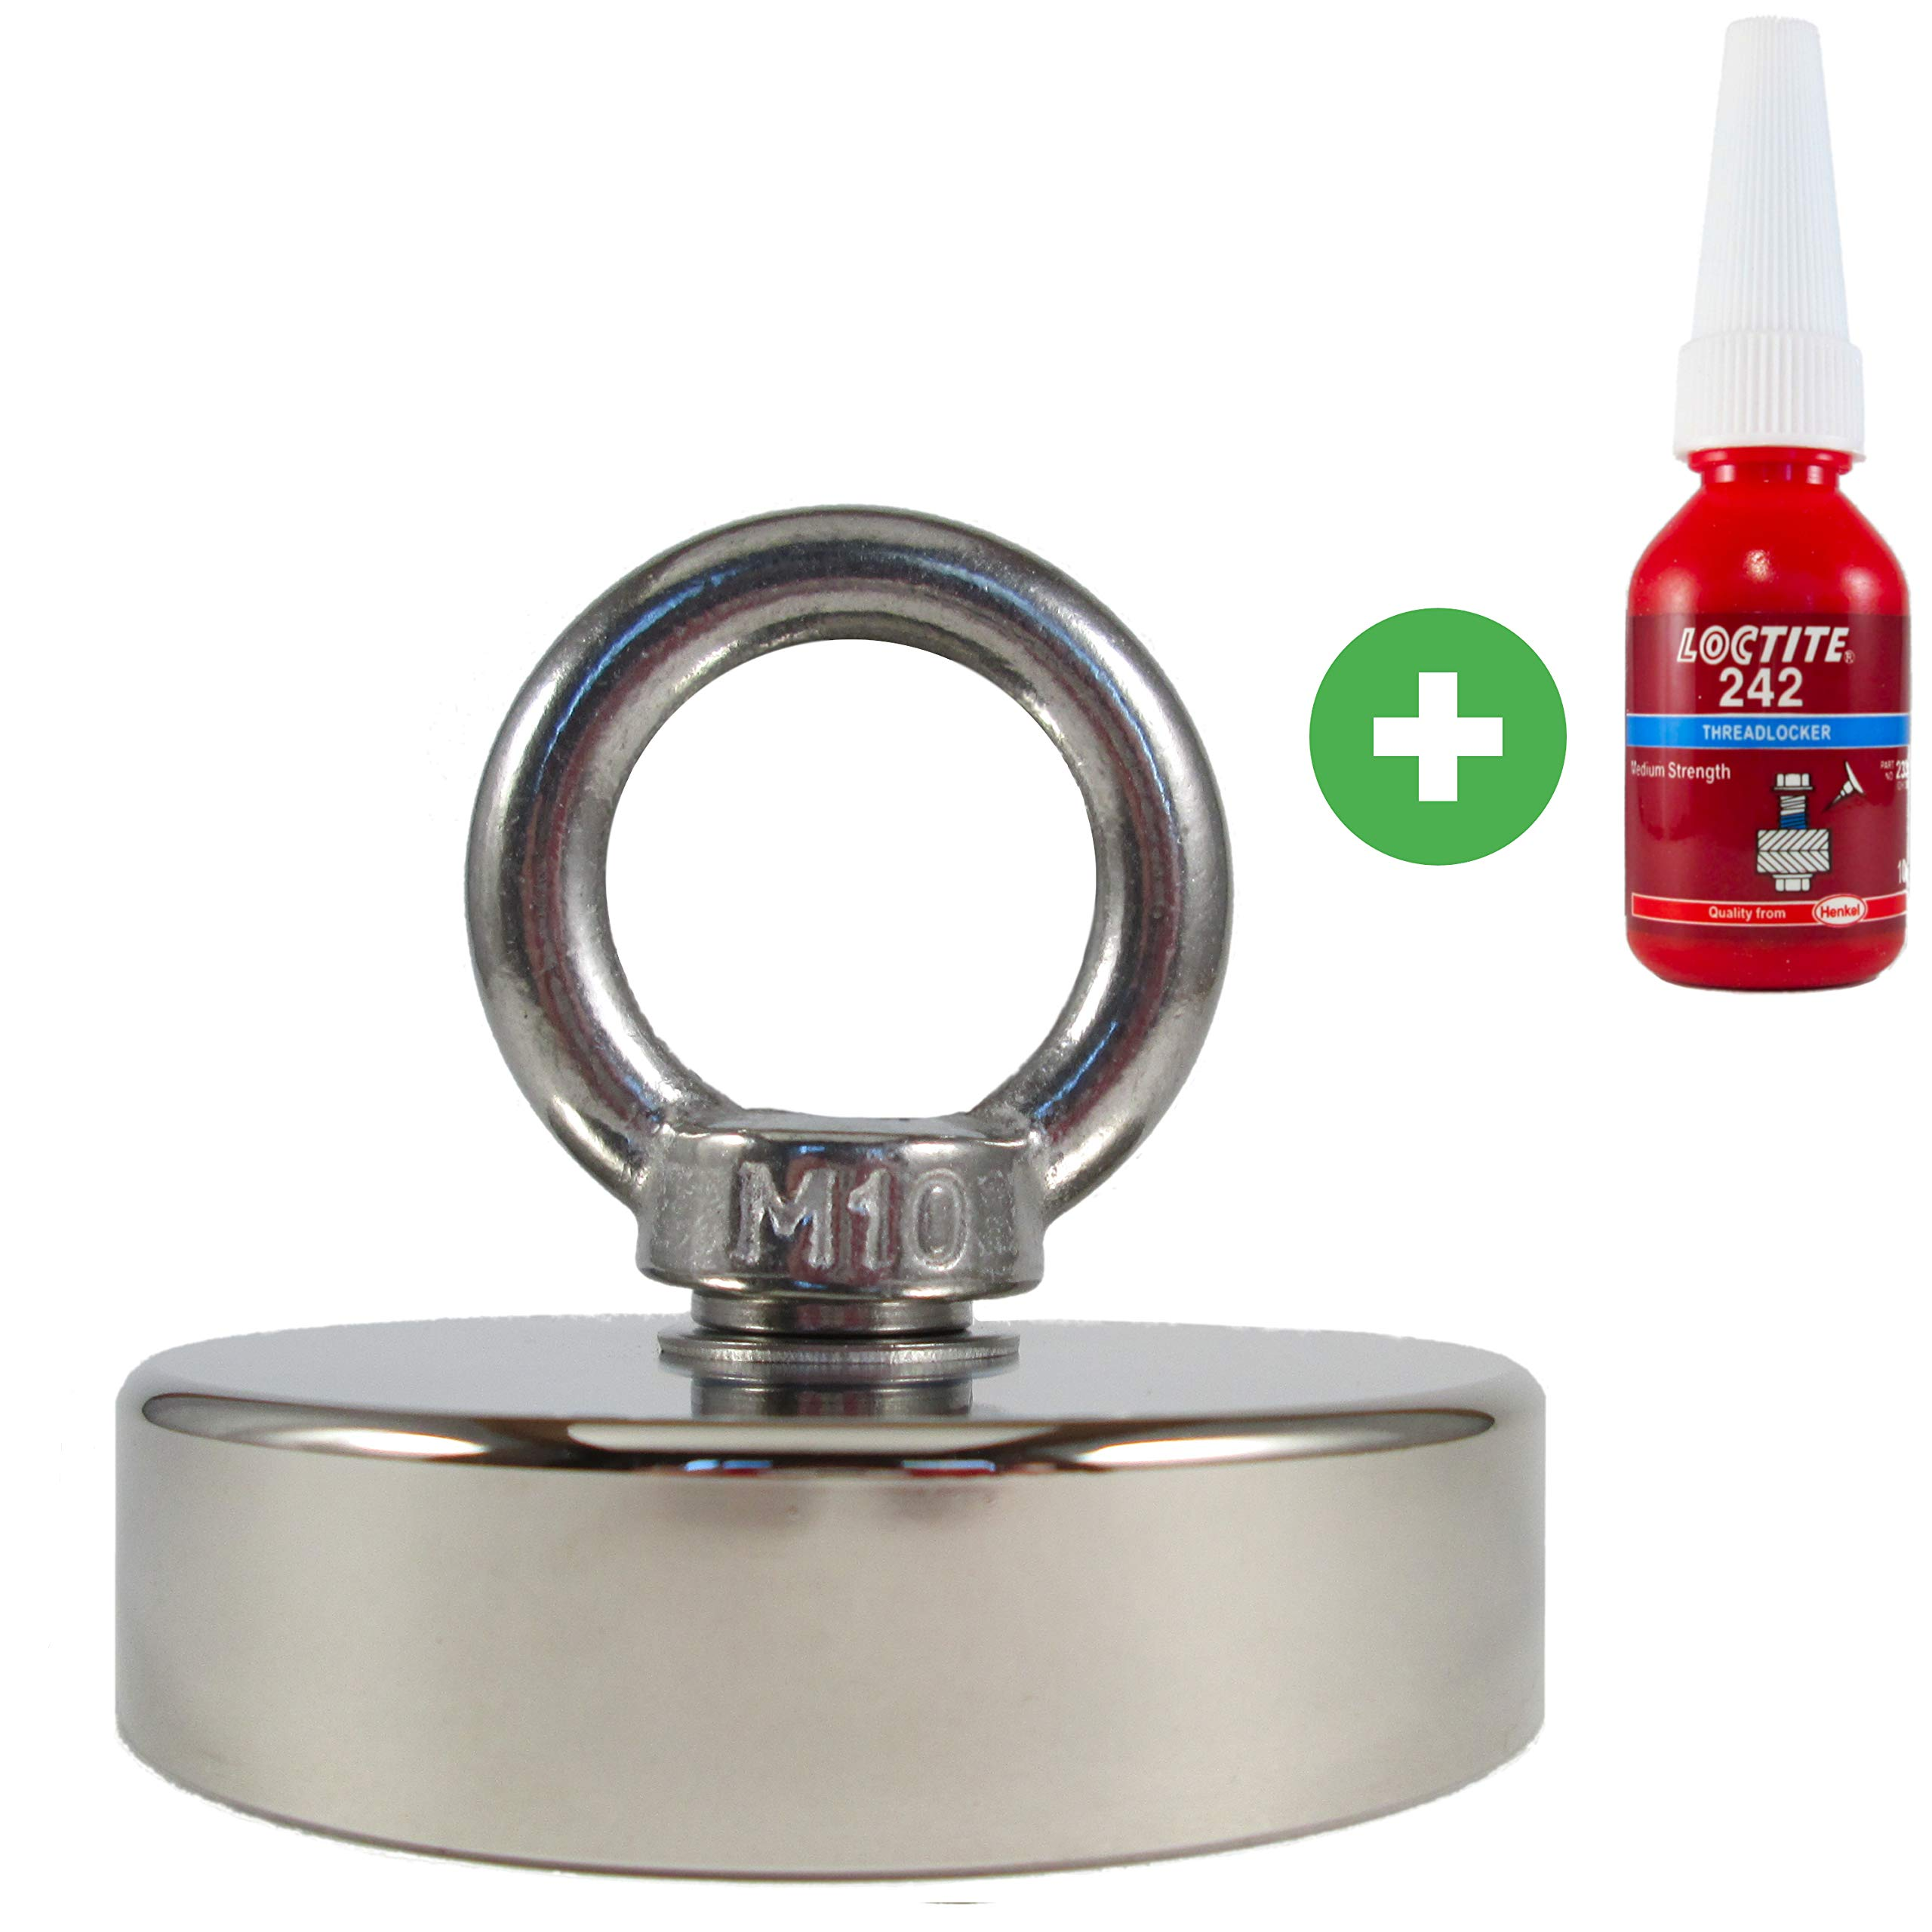 Fishing Magnet 580 LB Pull Force by Magic Magnets. Includes Loctite Threadlocker. Super Strong Rare-Earth Neodymium Magnet for Salvage, Recovery, Magnet Fishing, and More.